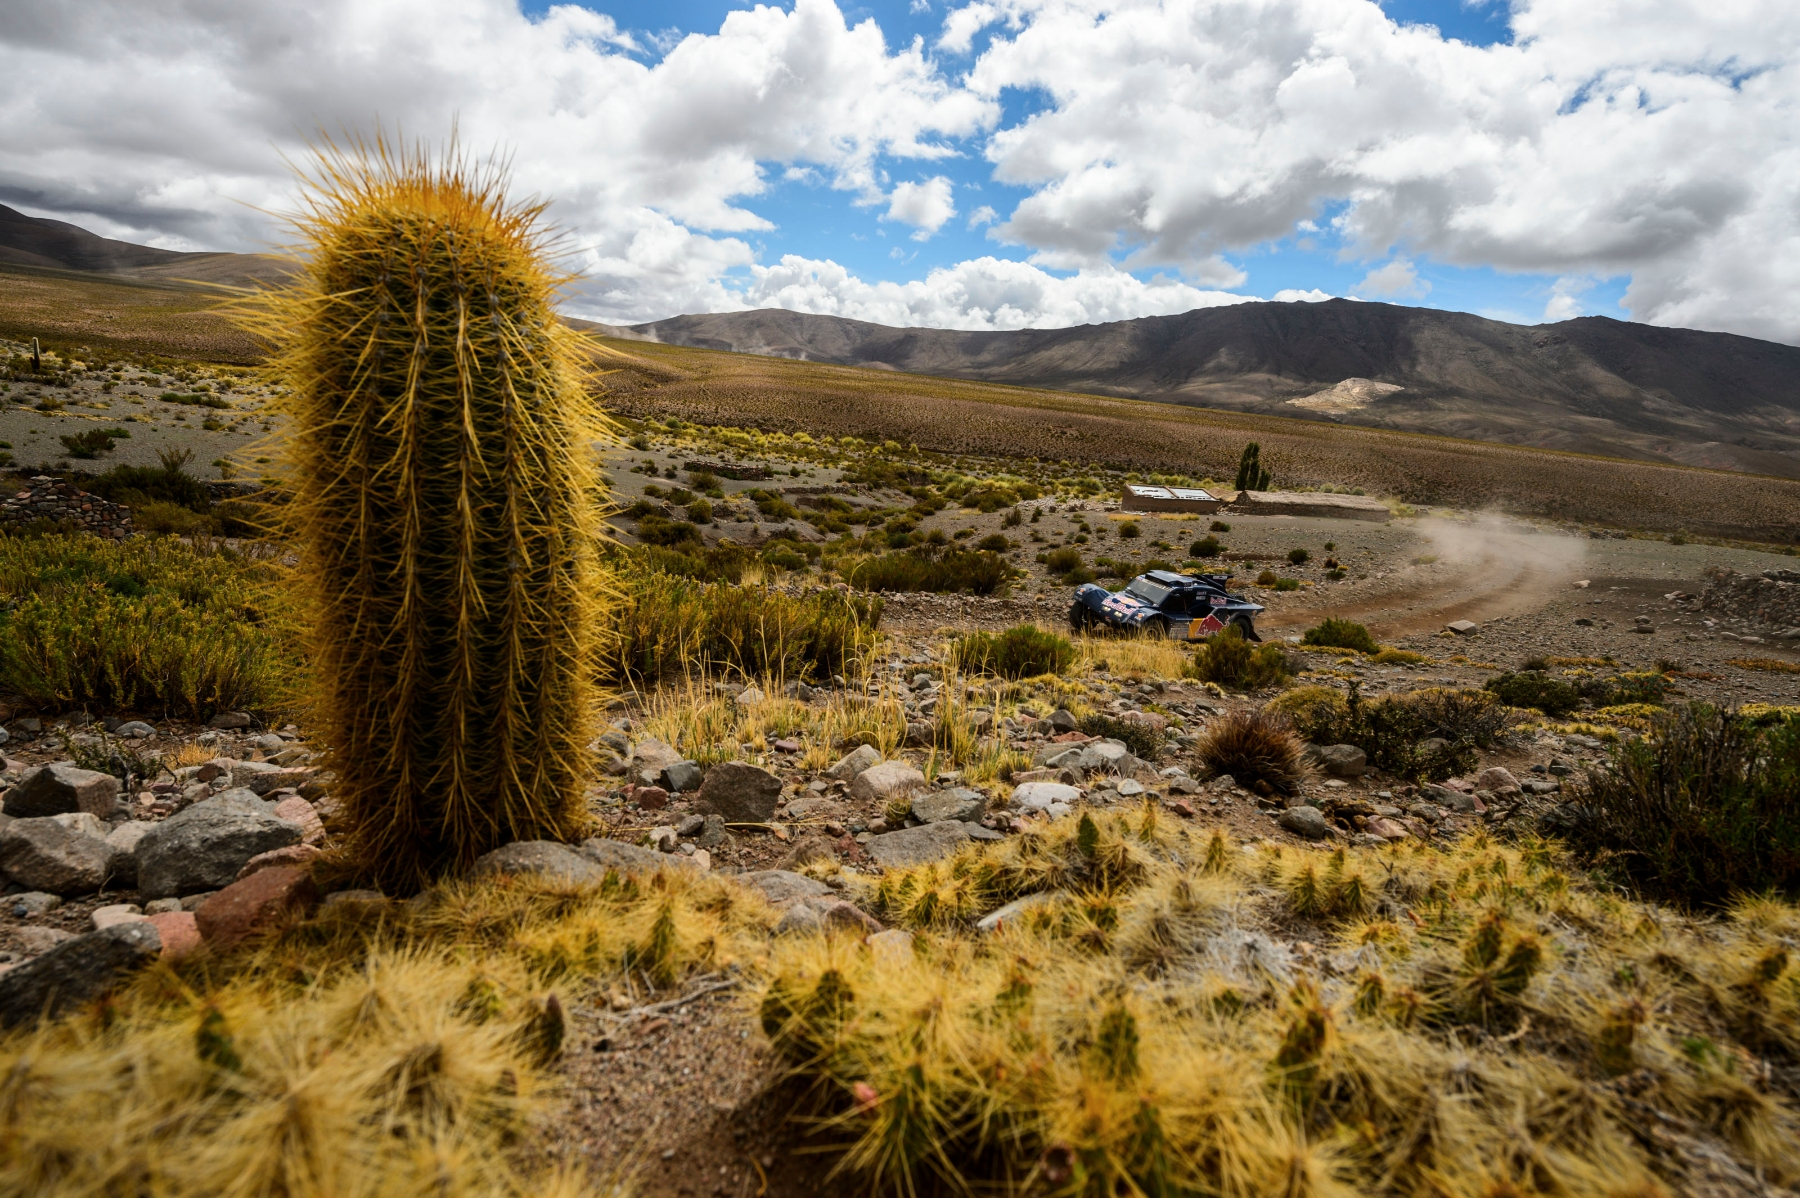 Ronan Chabot (driver) and Gilles Pillot (co-driver) race during the 7th stage of Dakar Rally from Salta, Argentina to Uyuni, Bolivia on January 12th, 2014